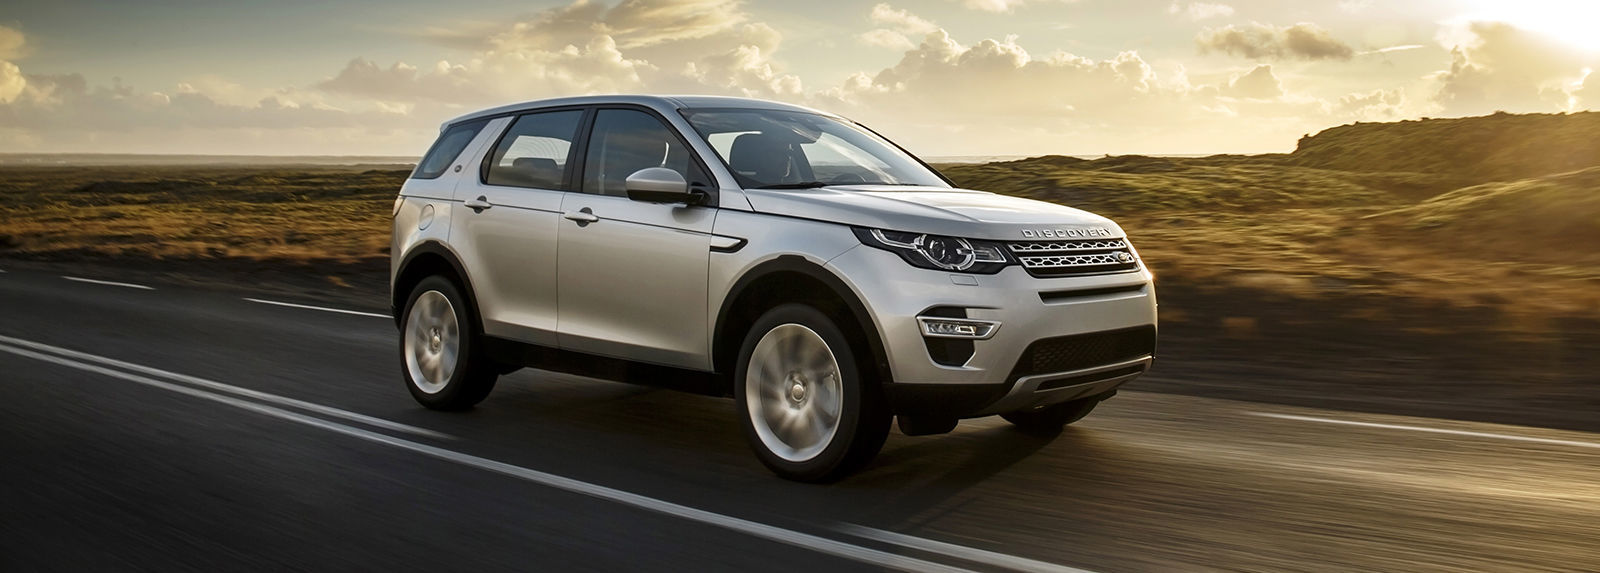 Land Rover Discovery Best 7 Seater Cars: Best 7 Seater SUVs To Buy In 2016